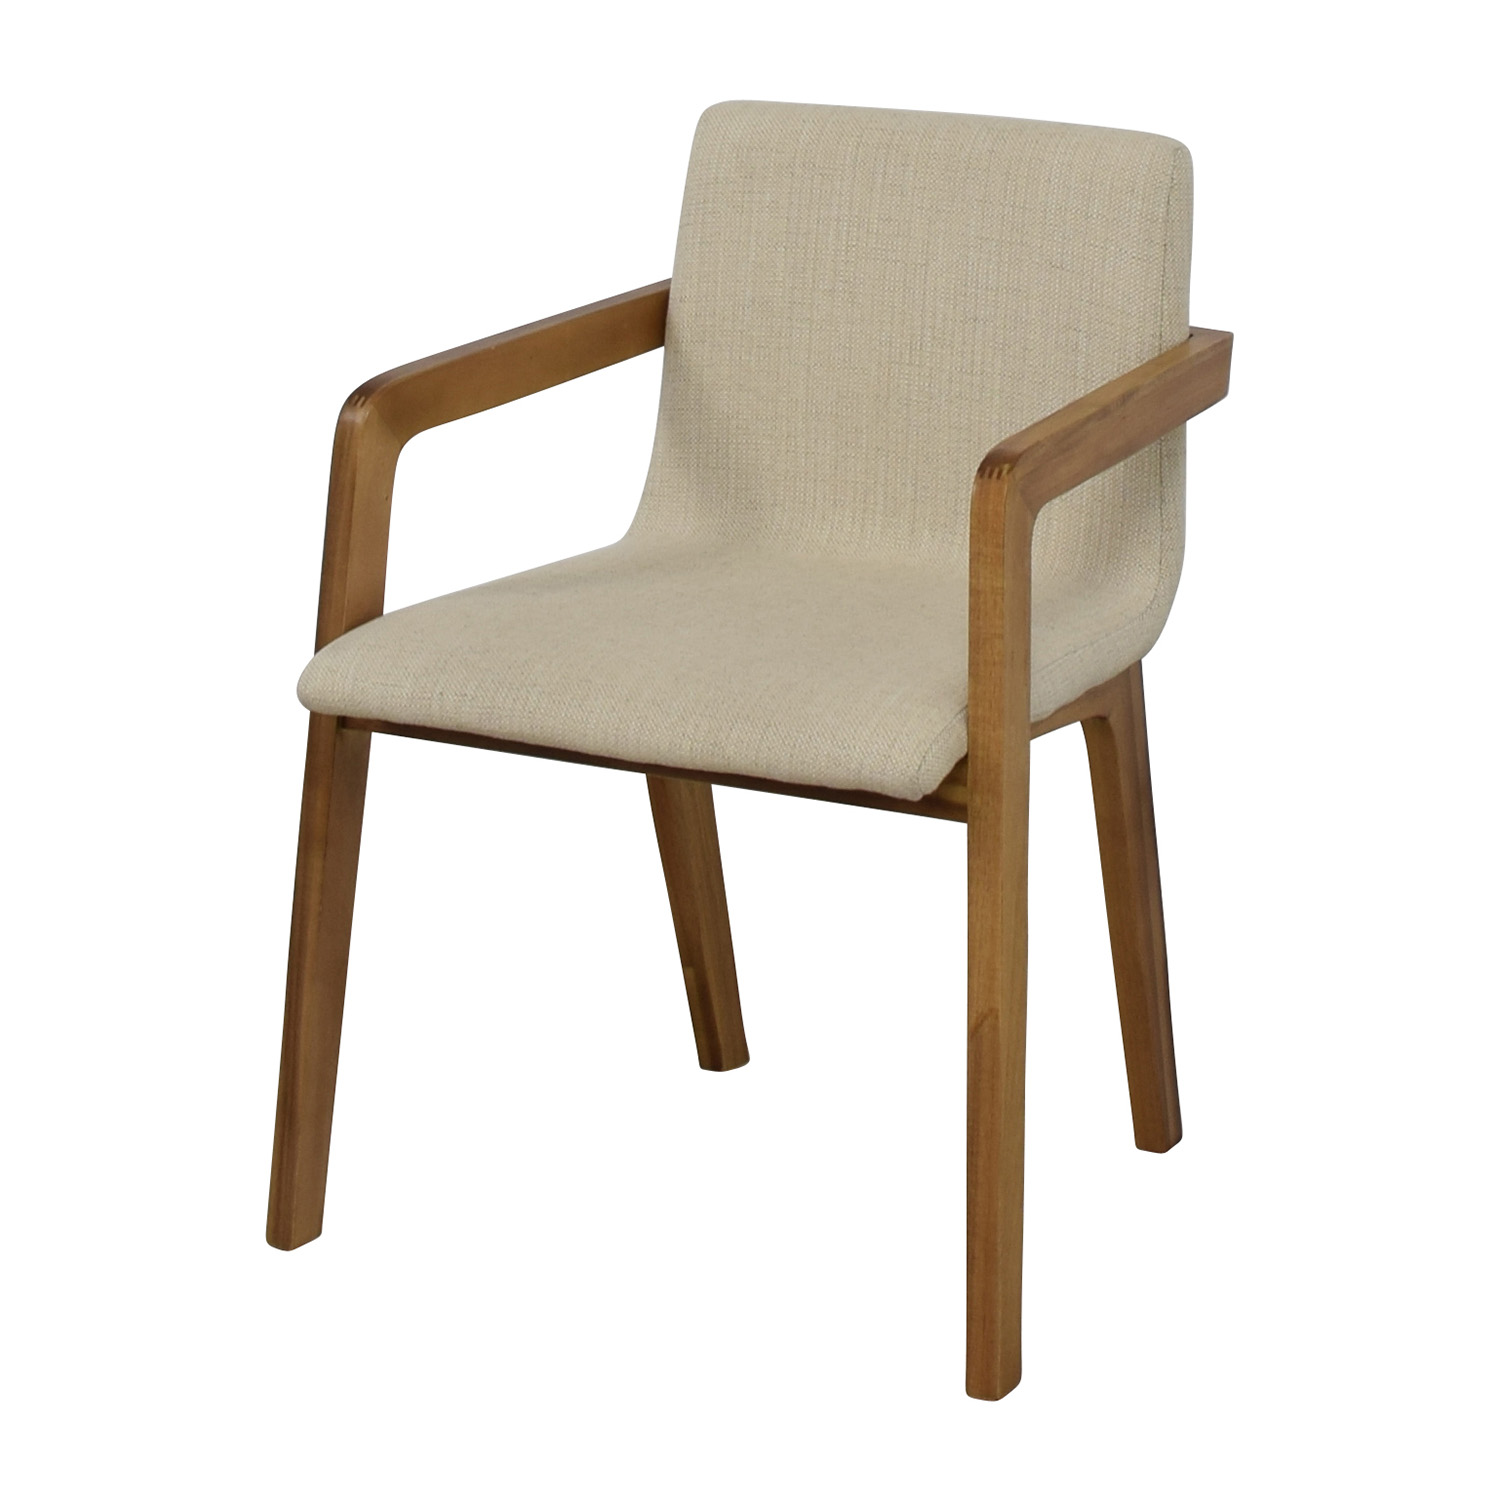 CB2 CB2 Natural Mid-Century Accent Chair discount